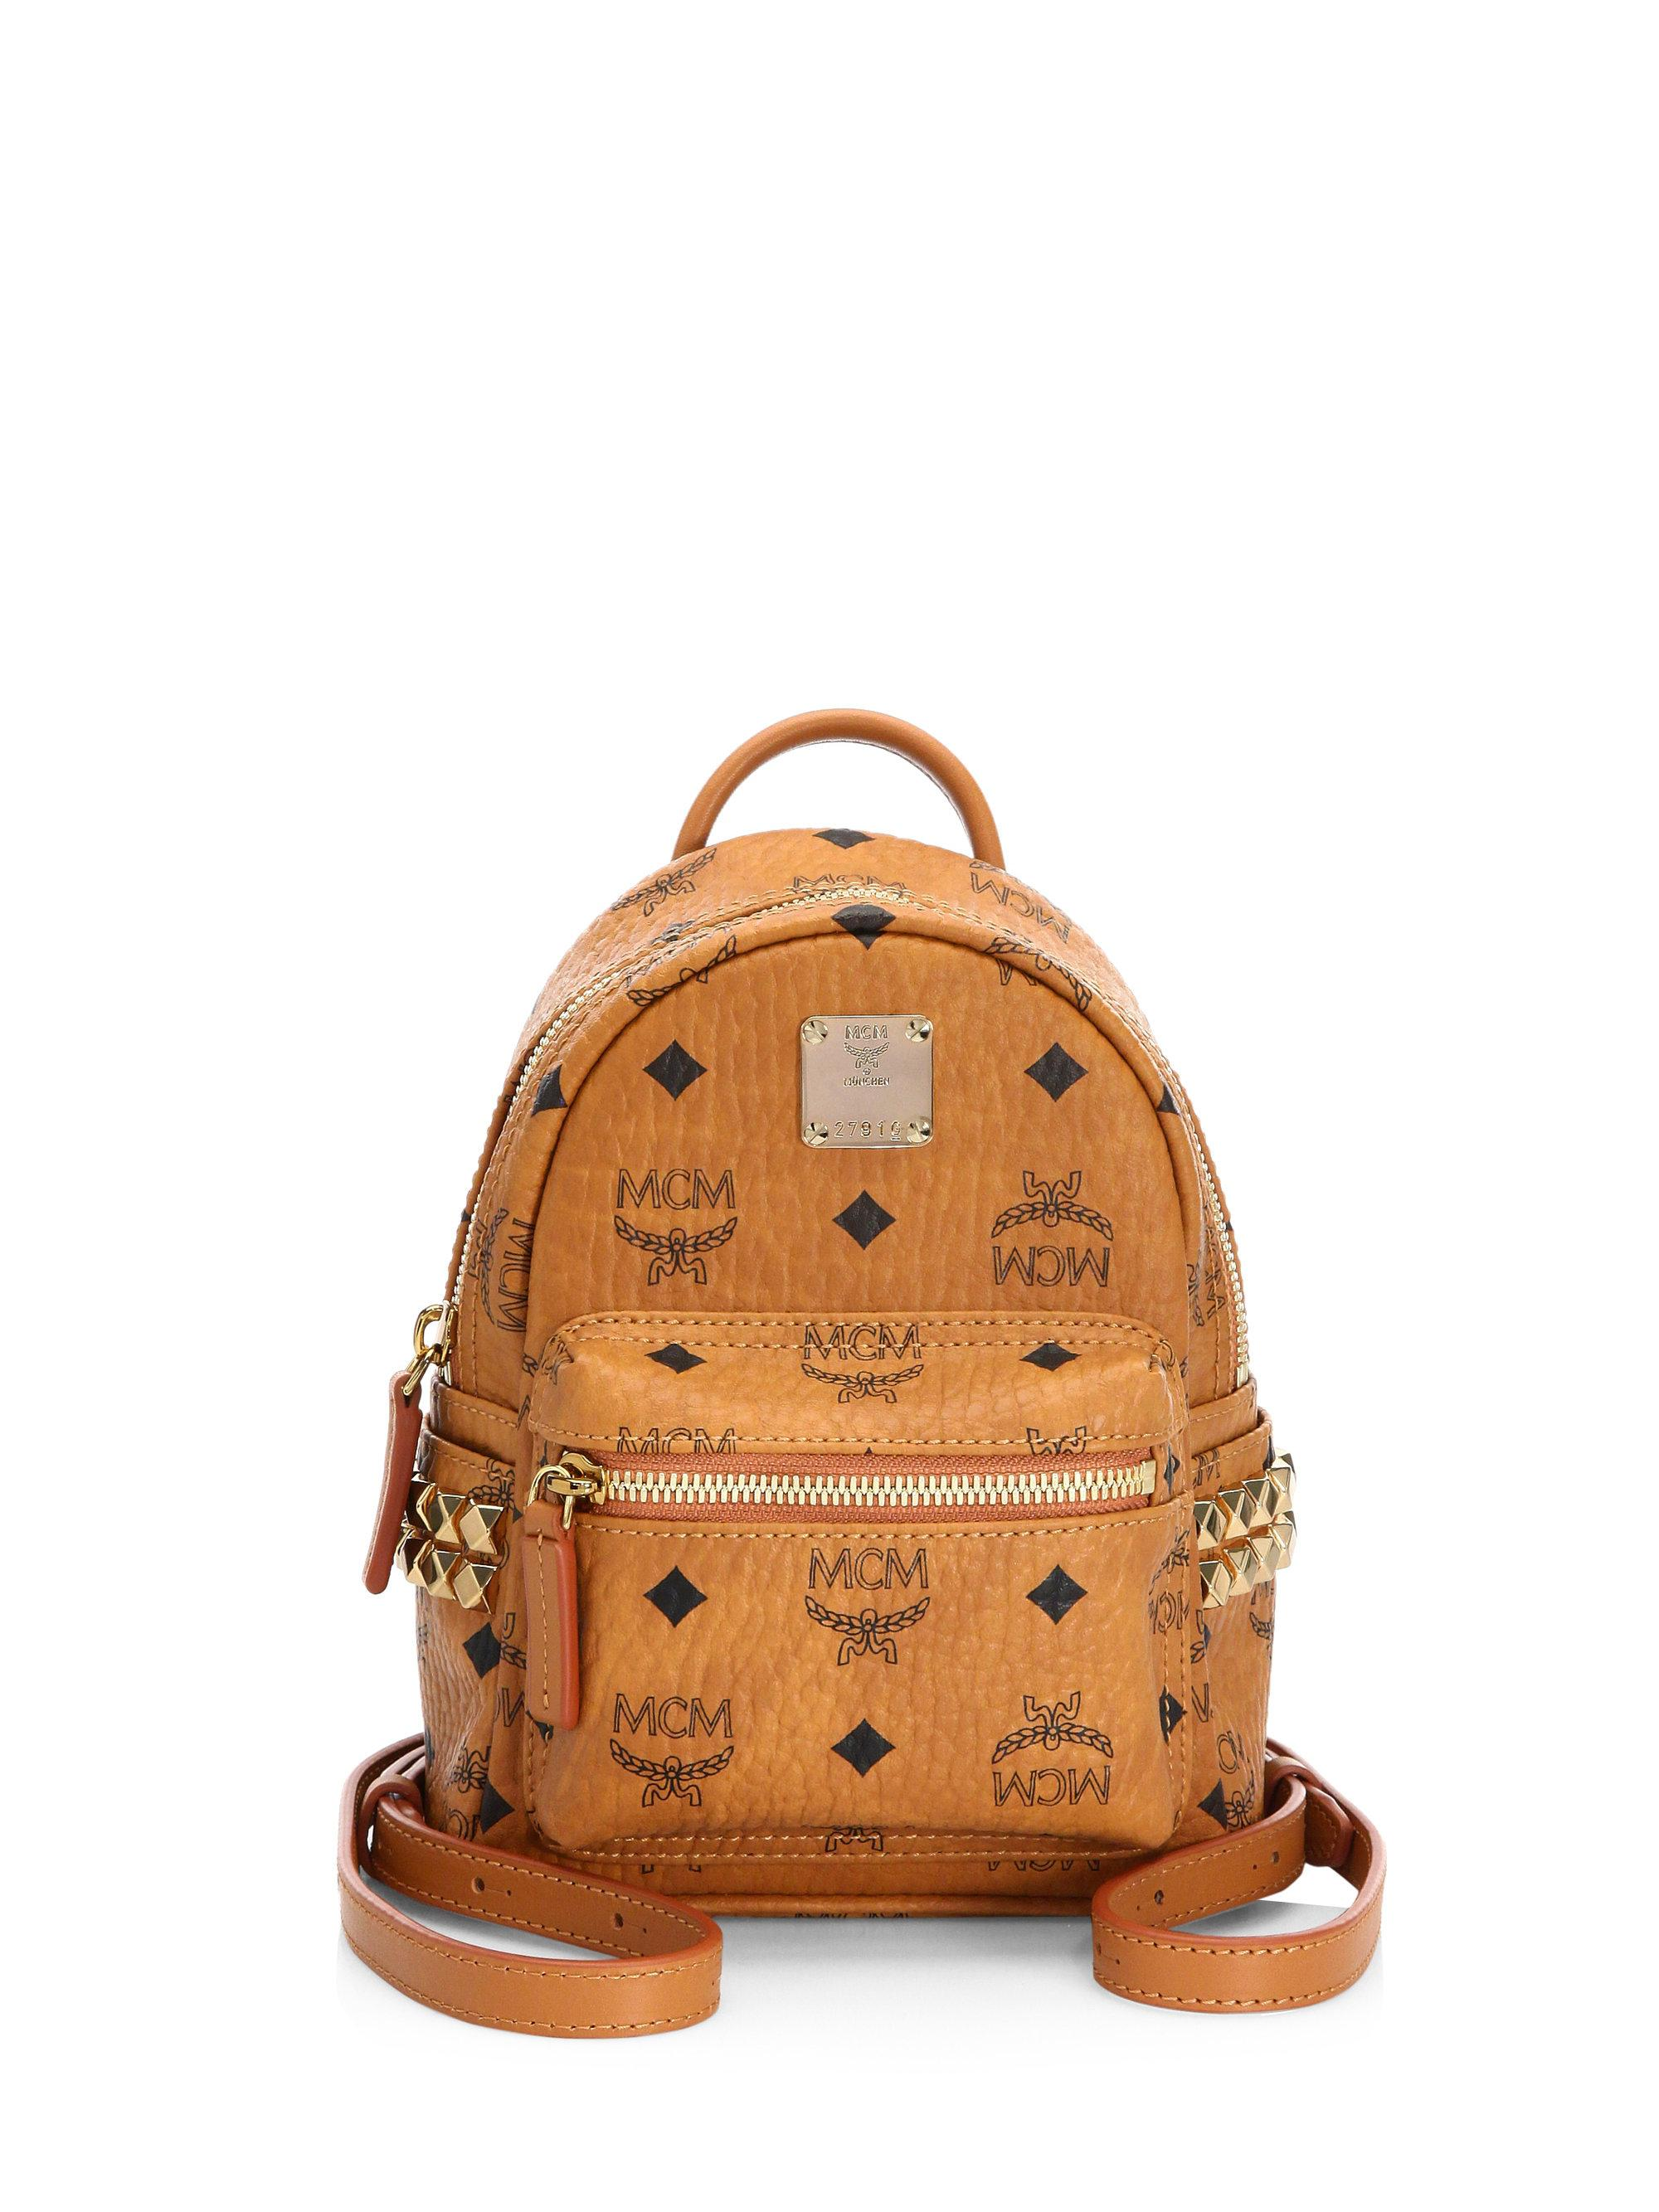 802aab2782e Lyst - MCM Bebe Boo X Mini Studded Coated Canvas Backpack in Brown